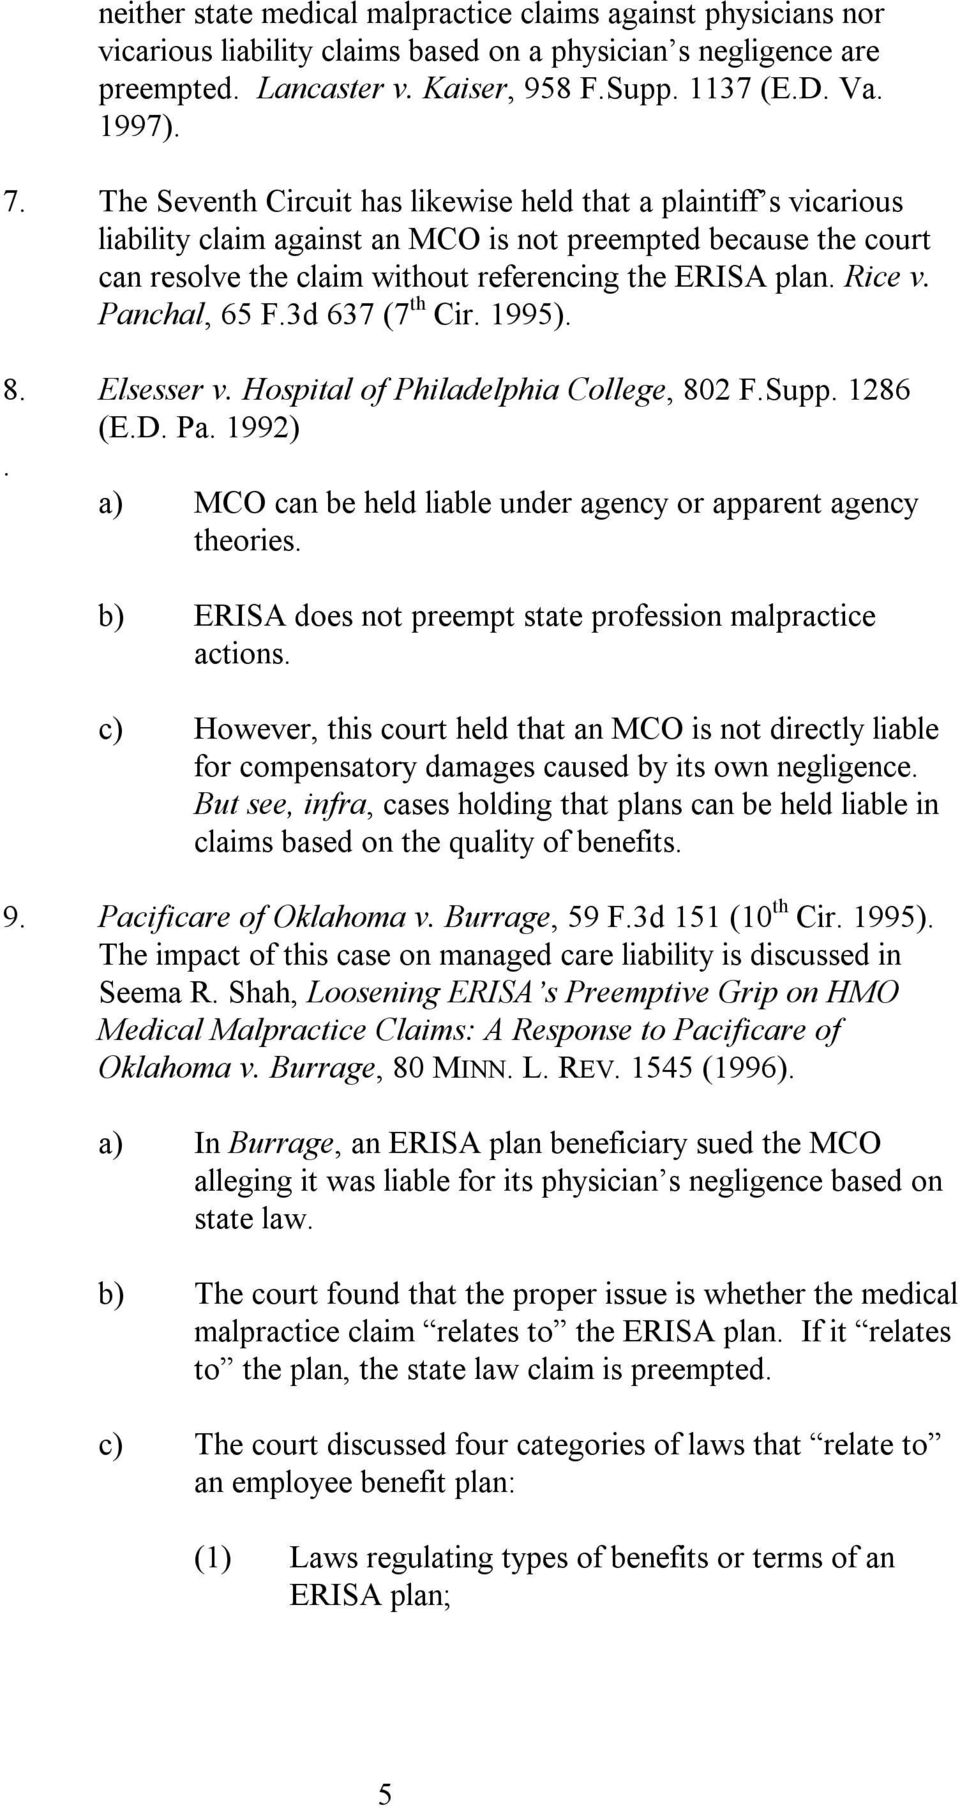 Panchal, 65 F.3d 637 (7 th Cir. 1995). 8. Elsesser v. Hospital of Philadelphia College, 802 F.Supp. 1286 (E.D. Pa. 1992). a) MCO can be held liable under agency or apparent agency theories.